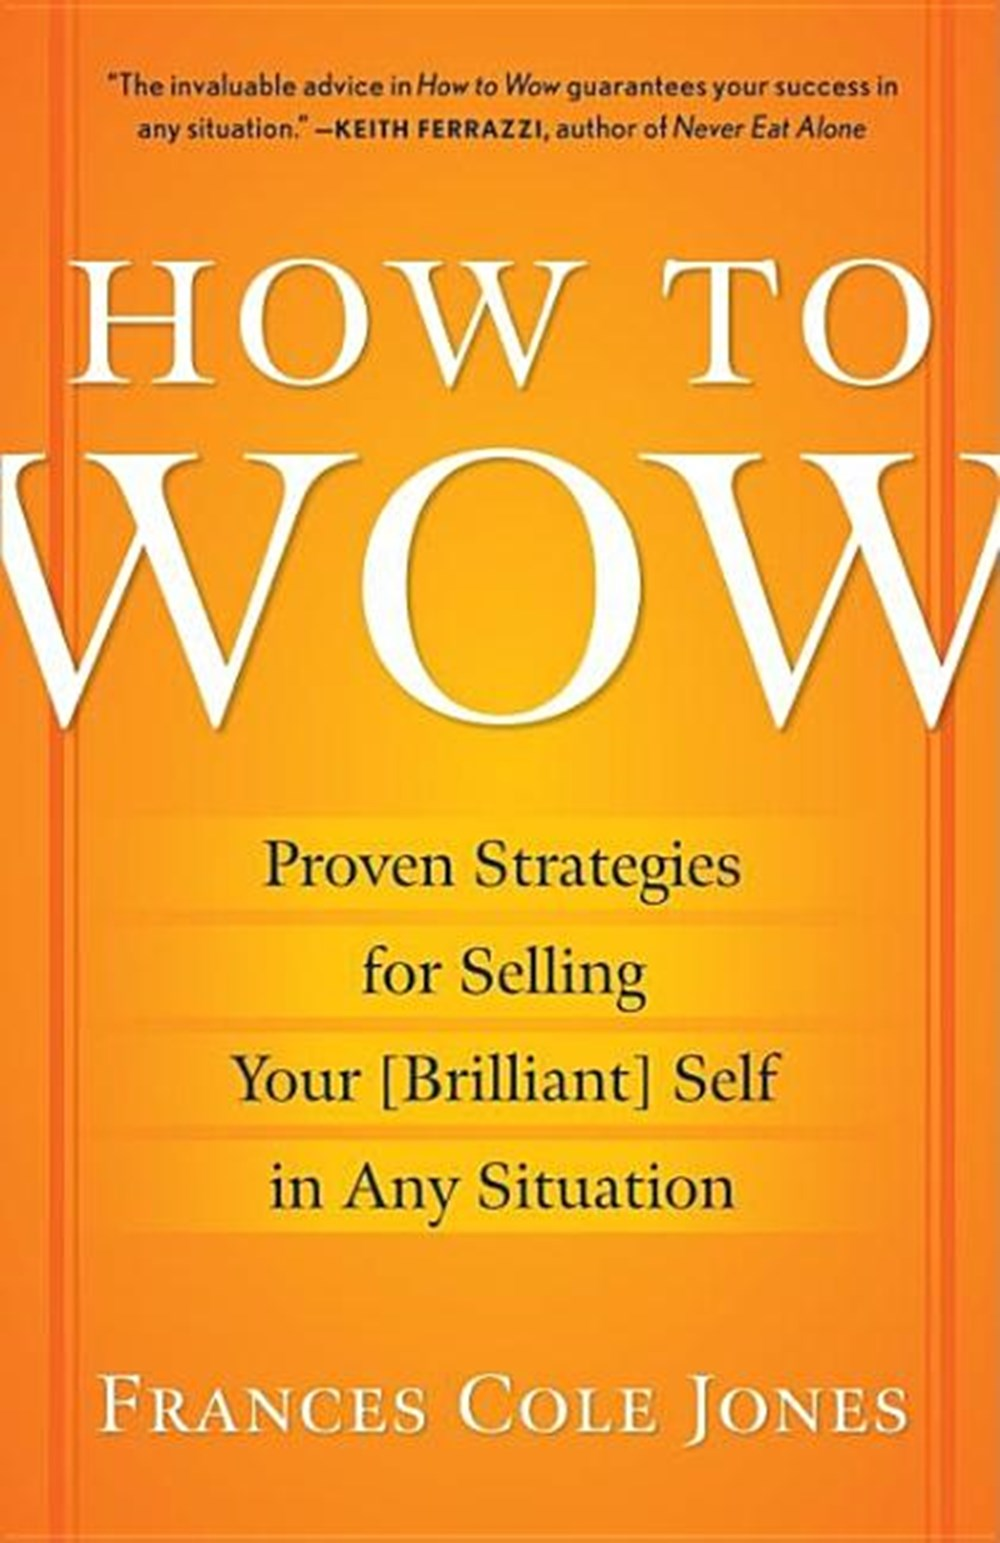 How to Wow Proven Strategies for Selling Your [brilliant] Self in Any Situation